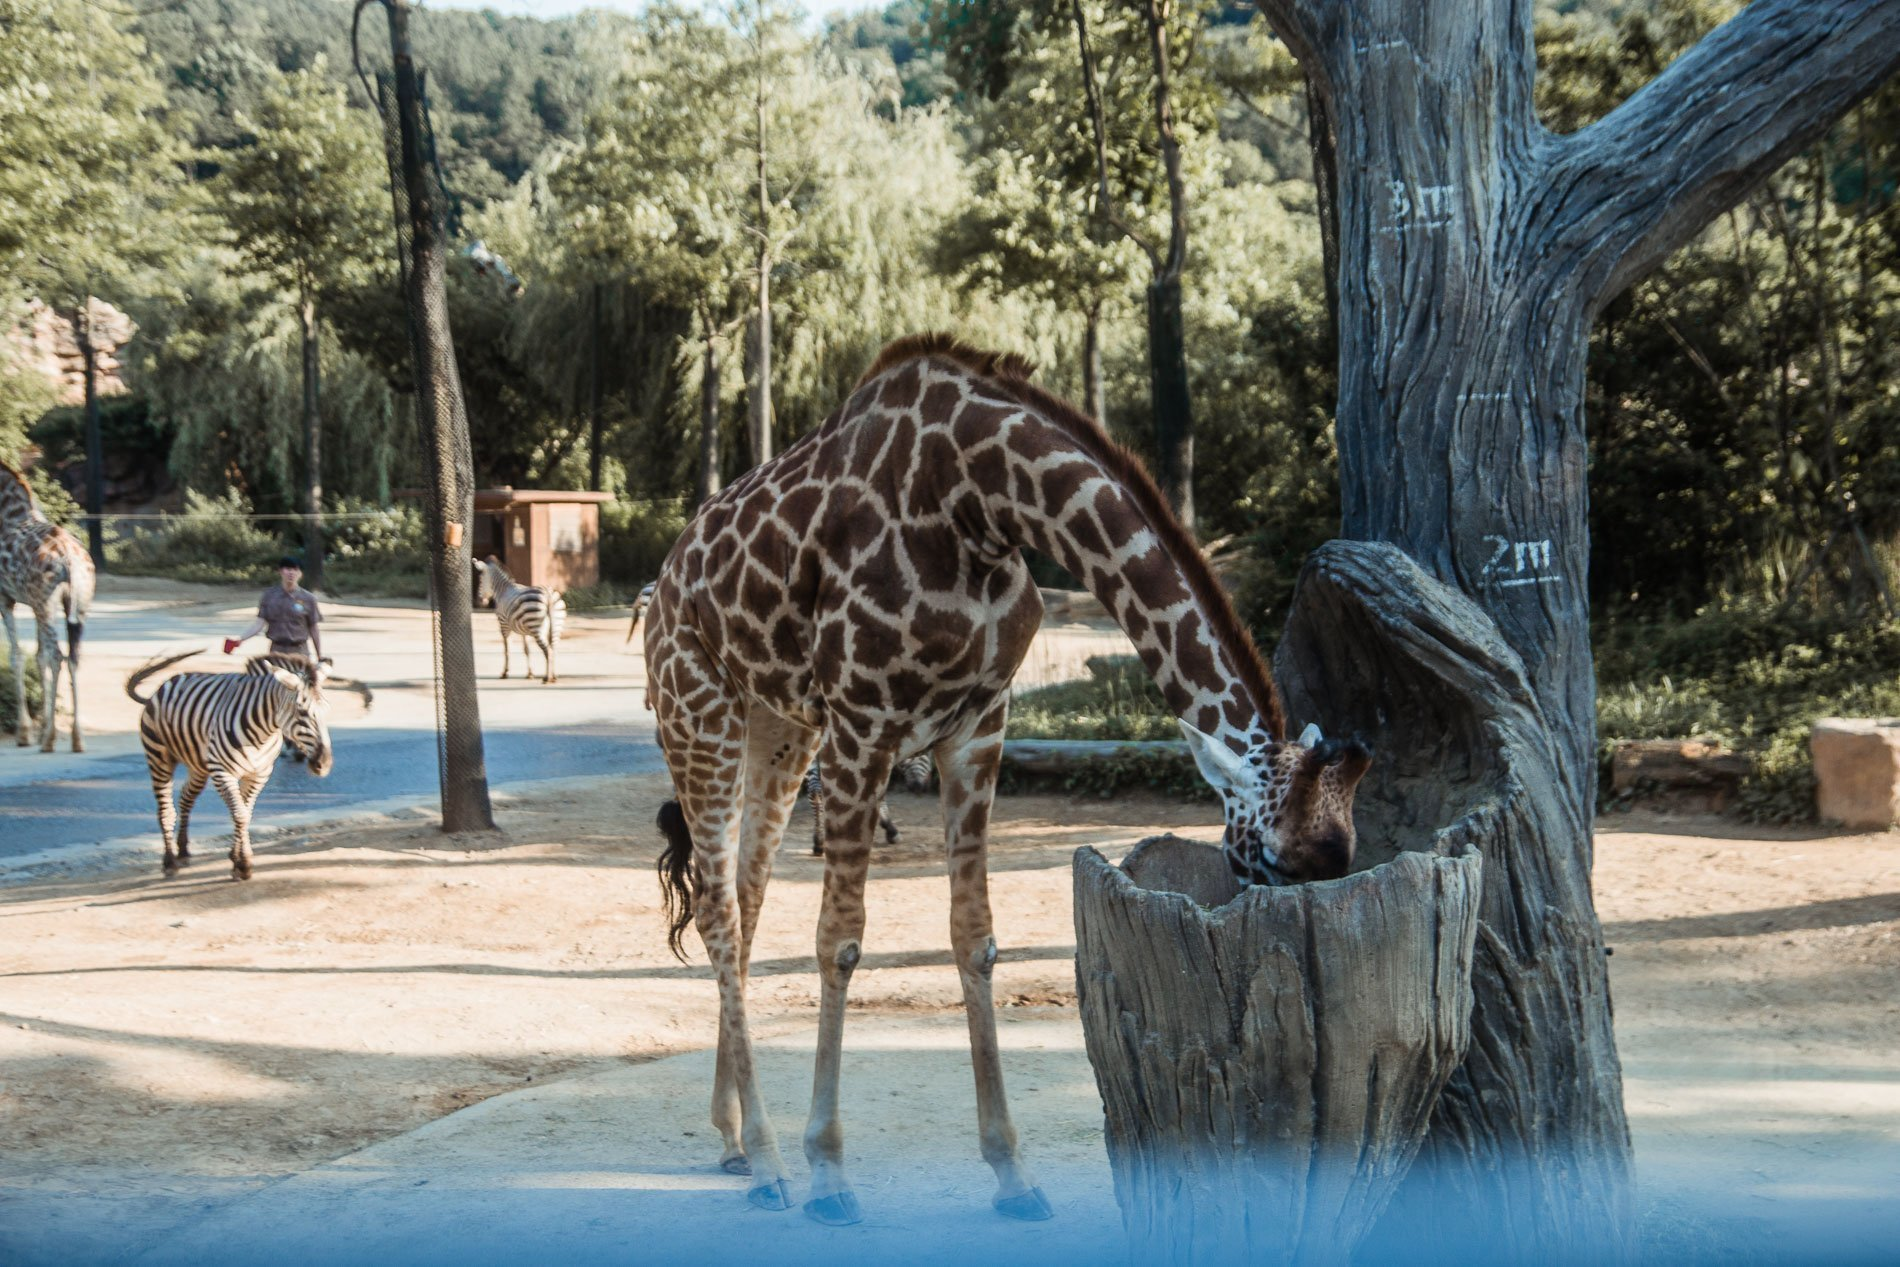 Giraffes in Everland, Seoul